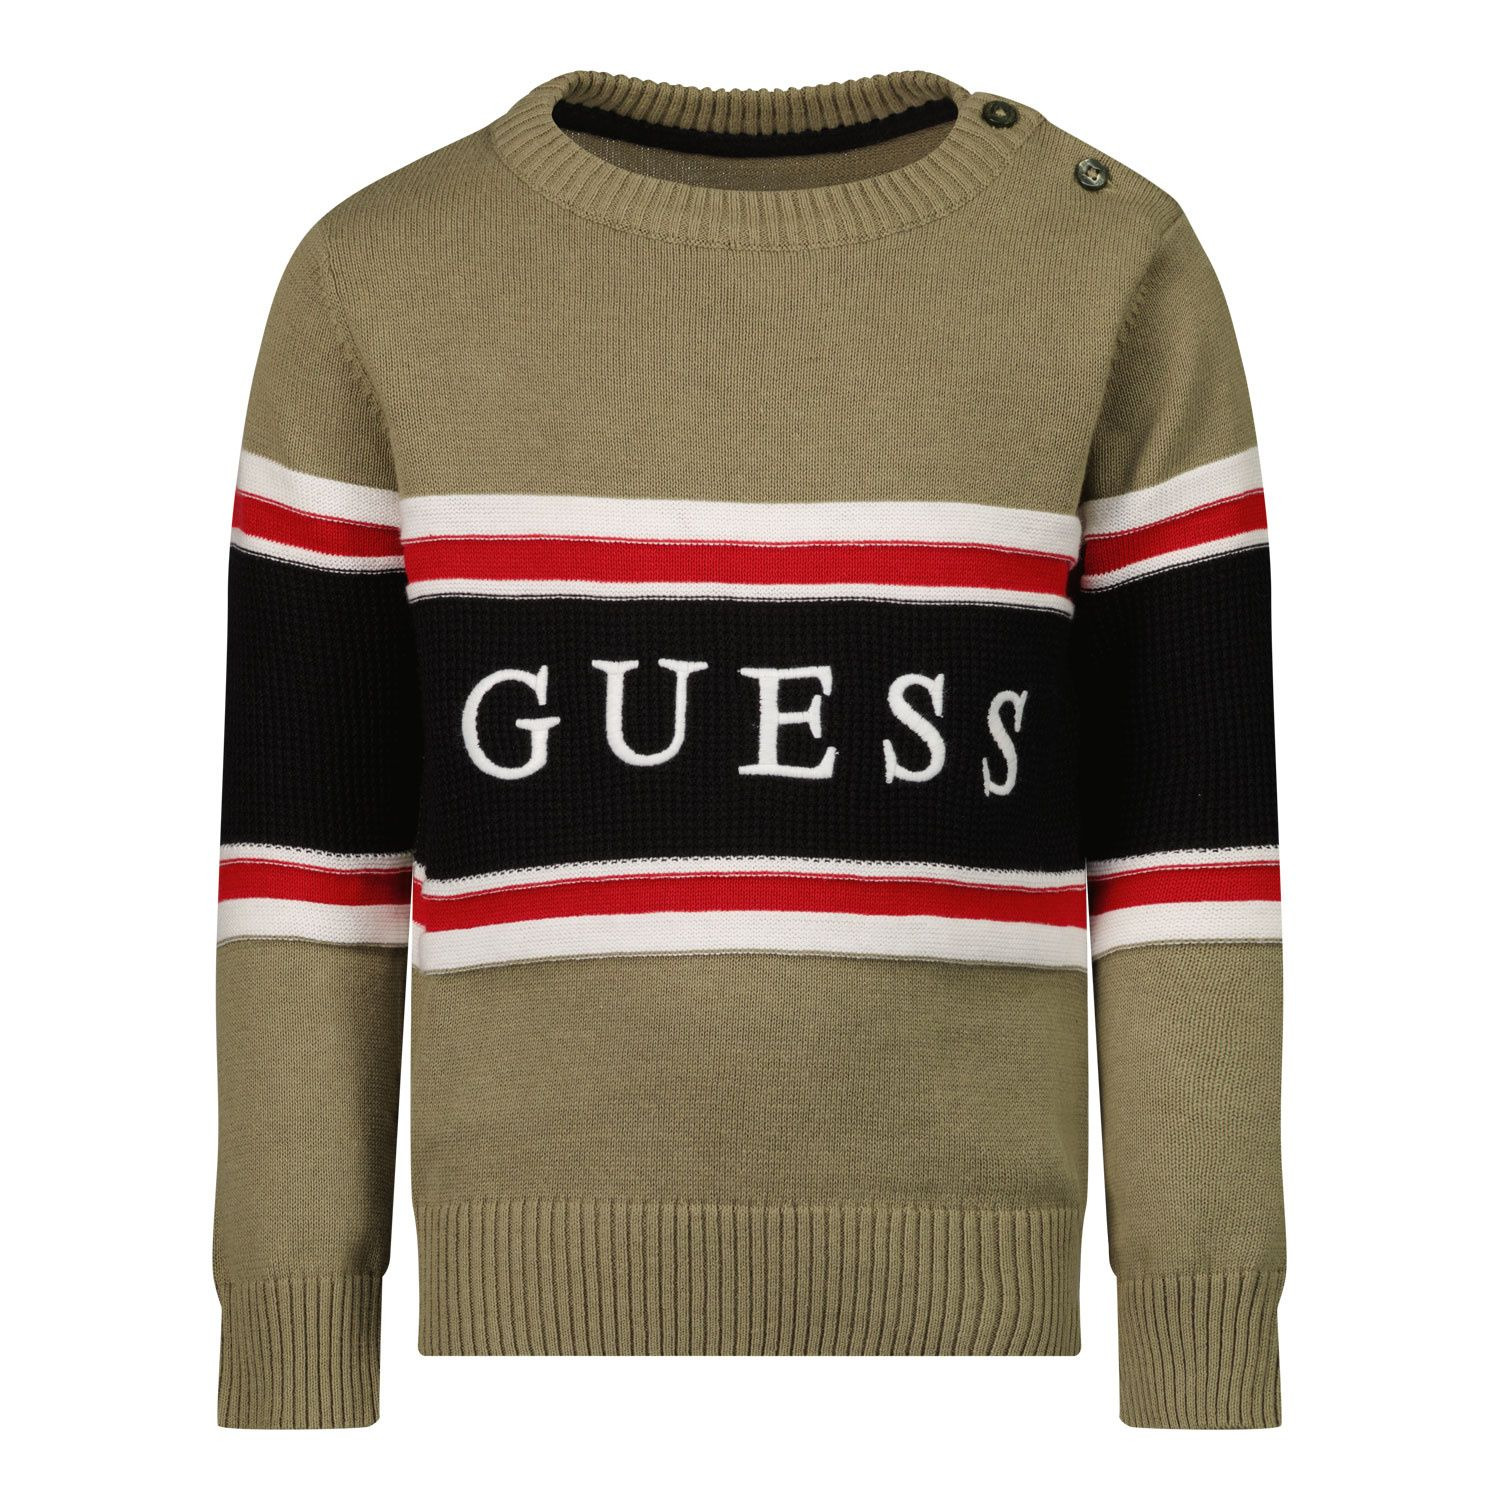 Picture of Guess N1YR00 baby sweater army